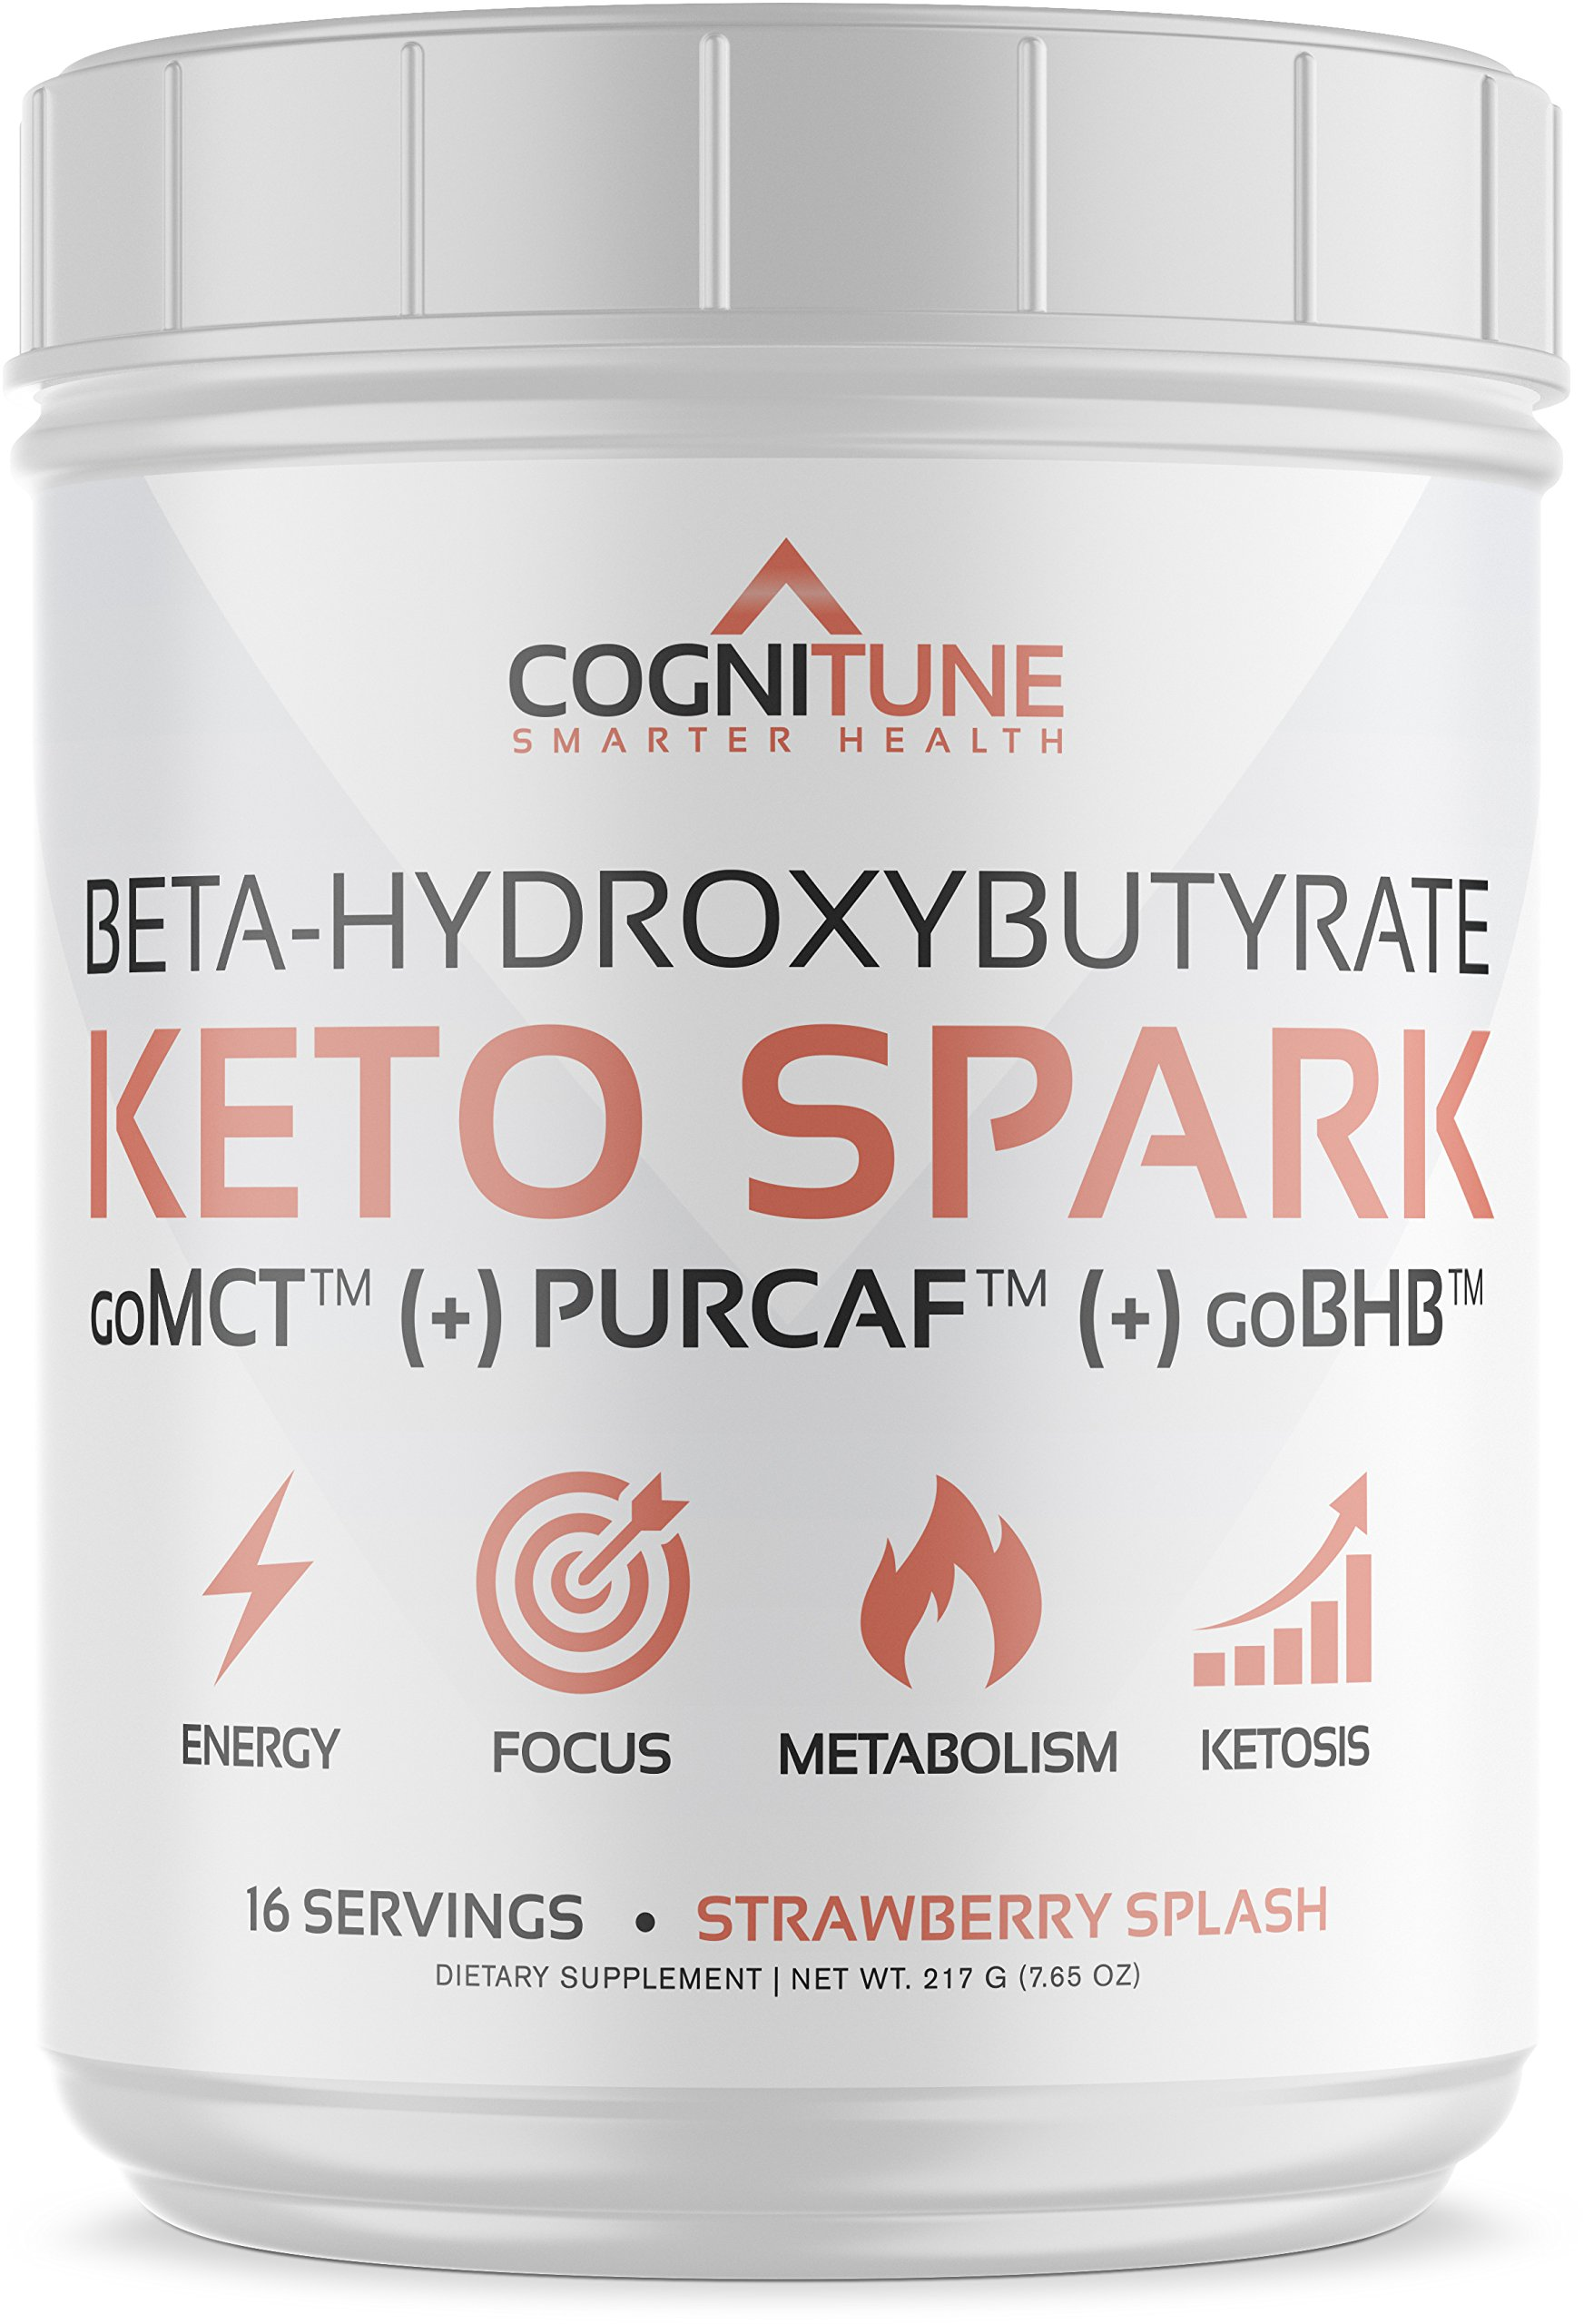 Keto Spark Energy Supplement - Exogenous Ketone Drink Mix with BHB Salts (goBHB), MCT Oil Powder (goMCT), Organic Caffeine (PurCaf), Collagen - Ketogenic Diet, Weight Loss & Fat Burning - 7.65 oz by CogniTune